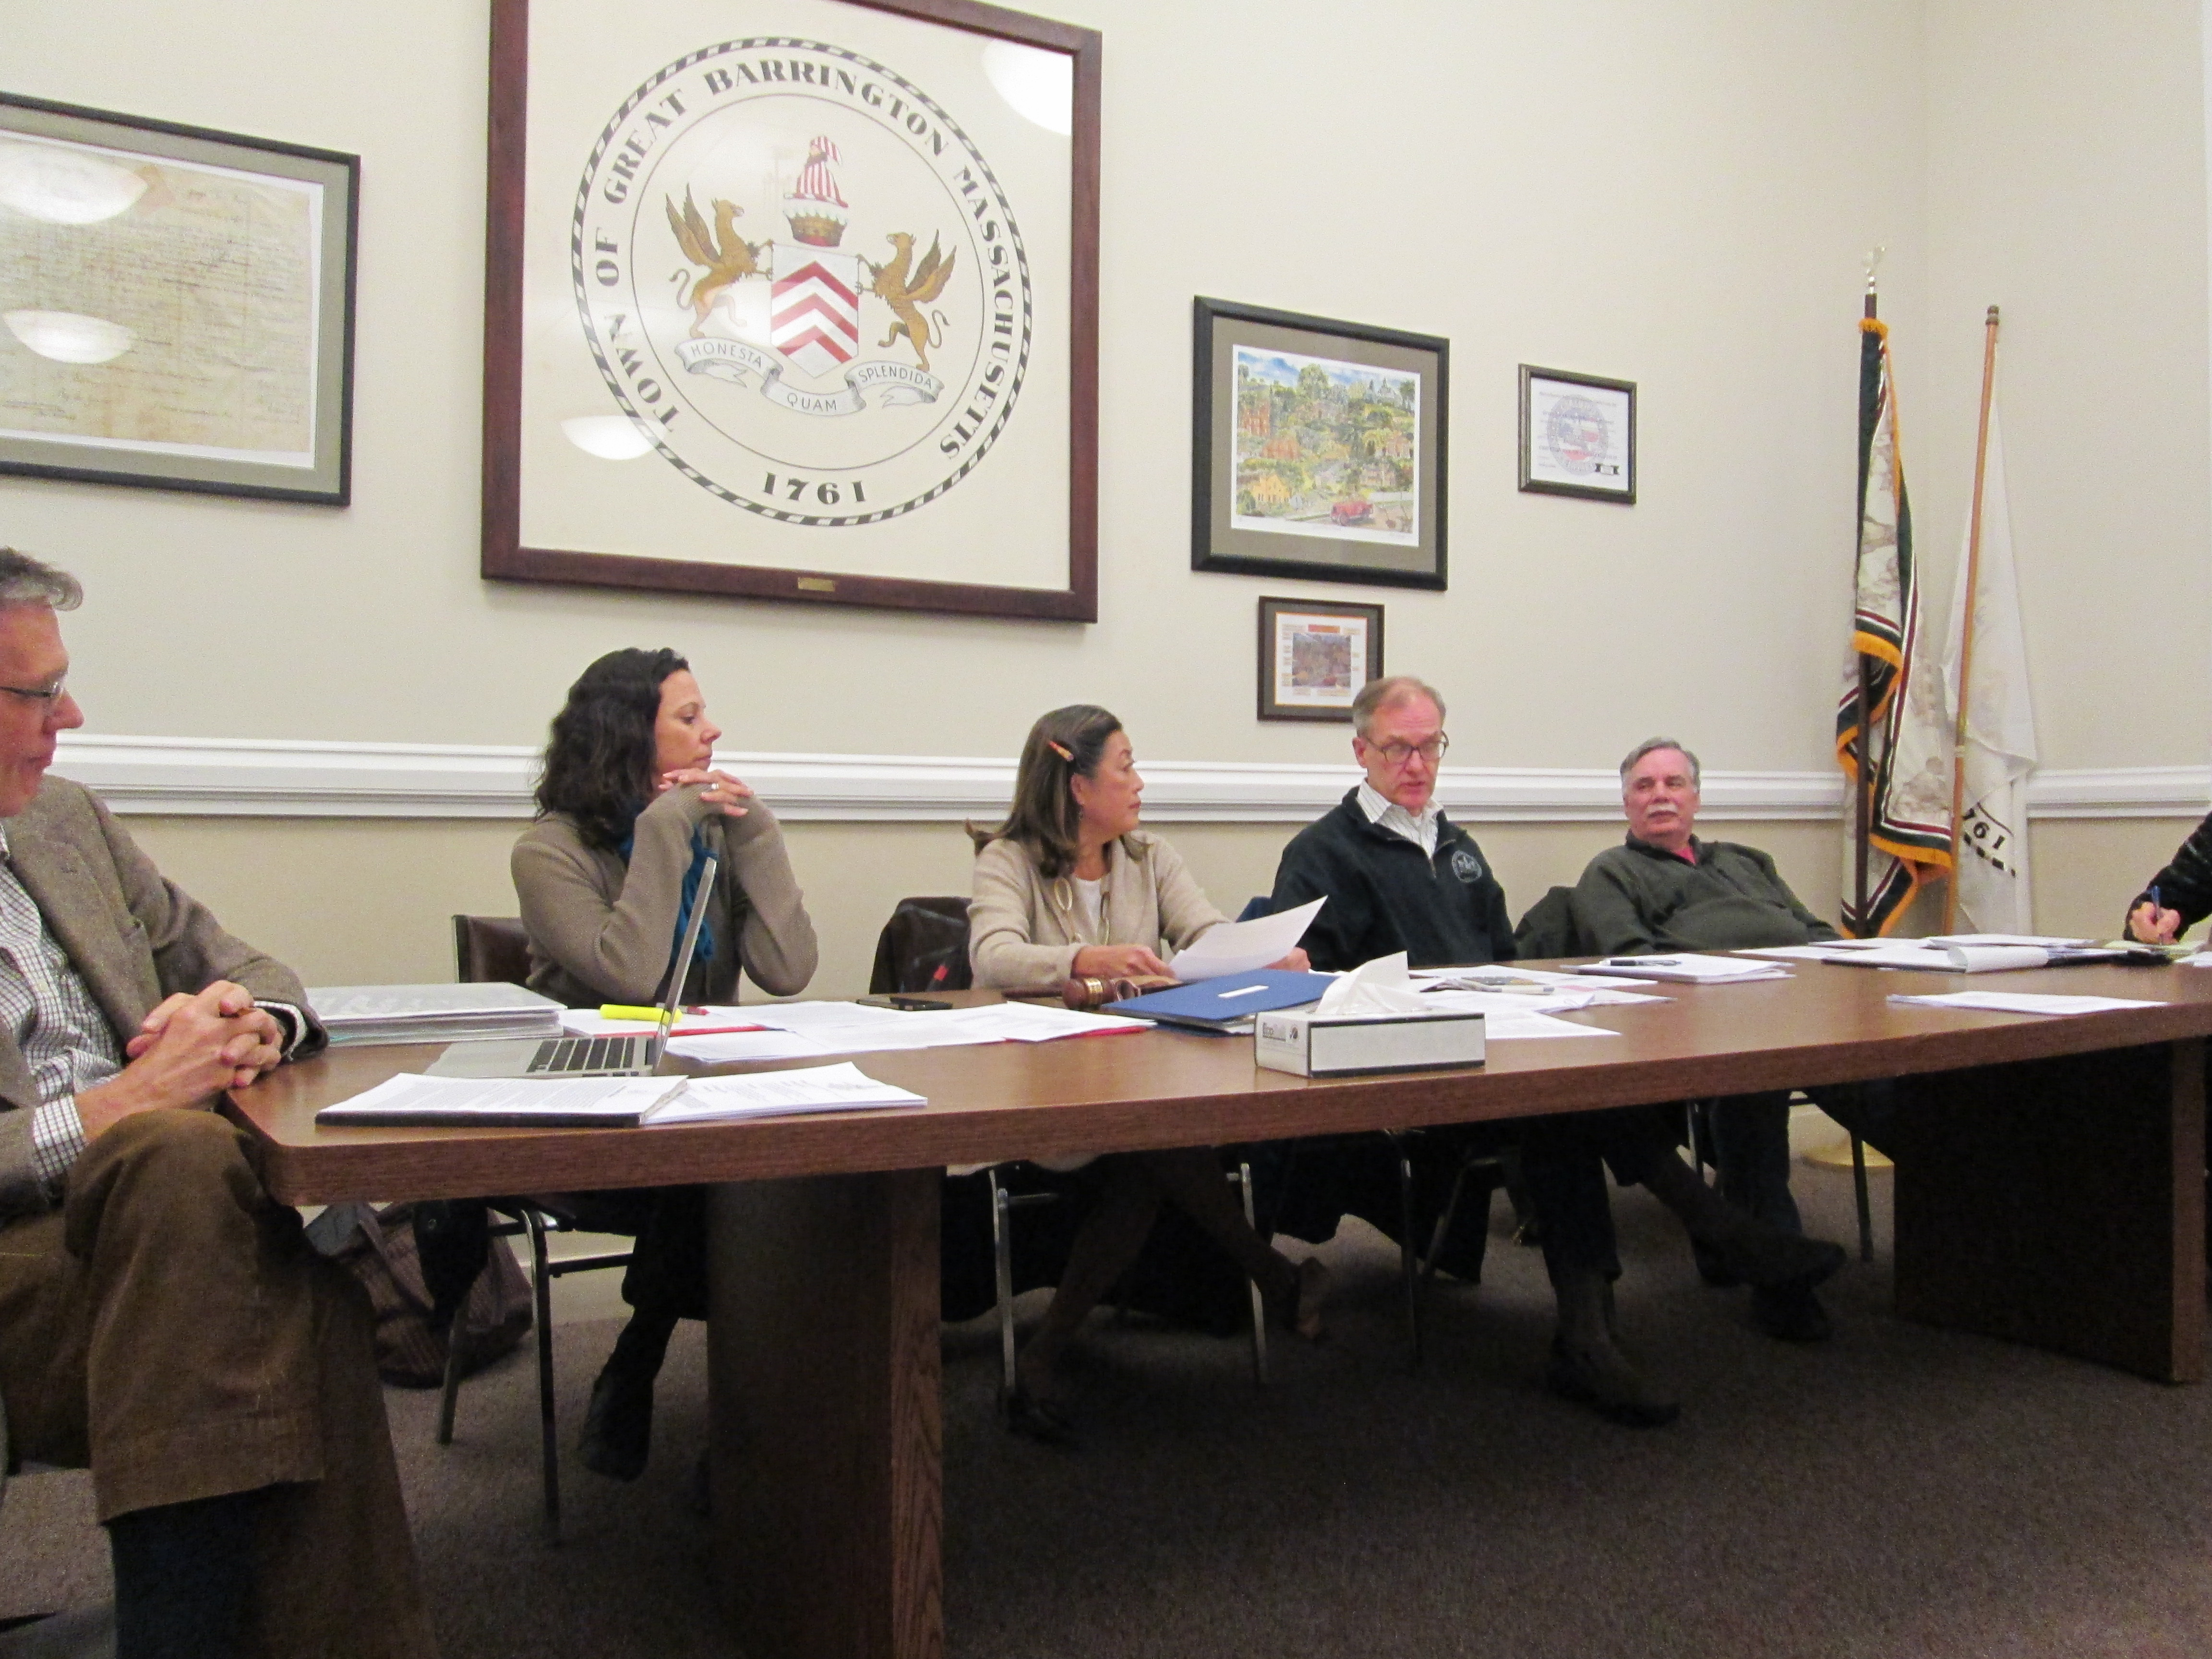 The Great Barrington Finance Committee voted 3-2 to support the petition to reorganize the regional school district.